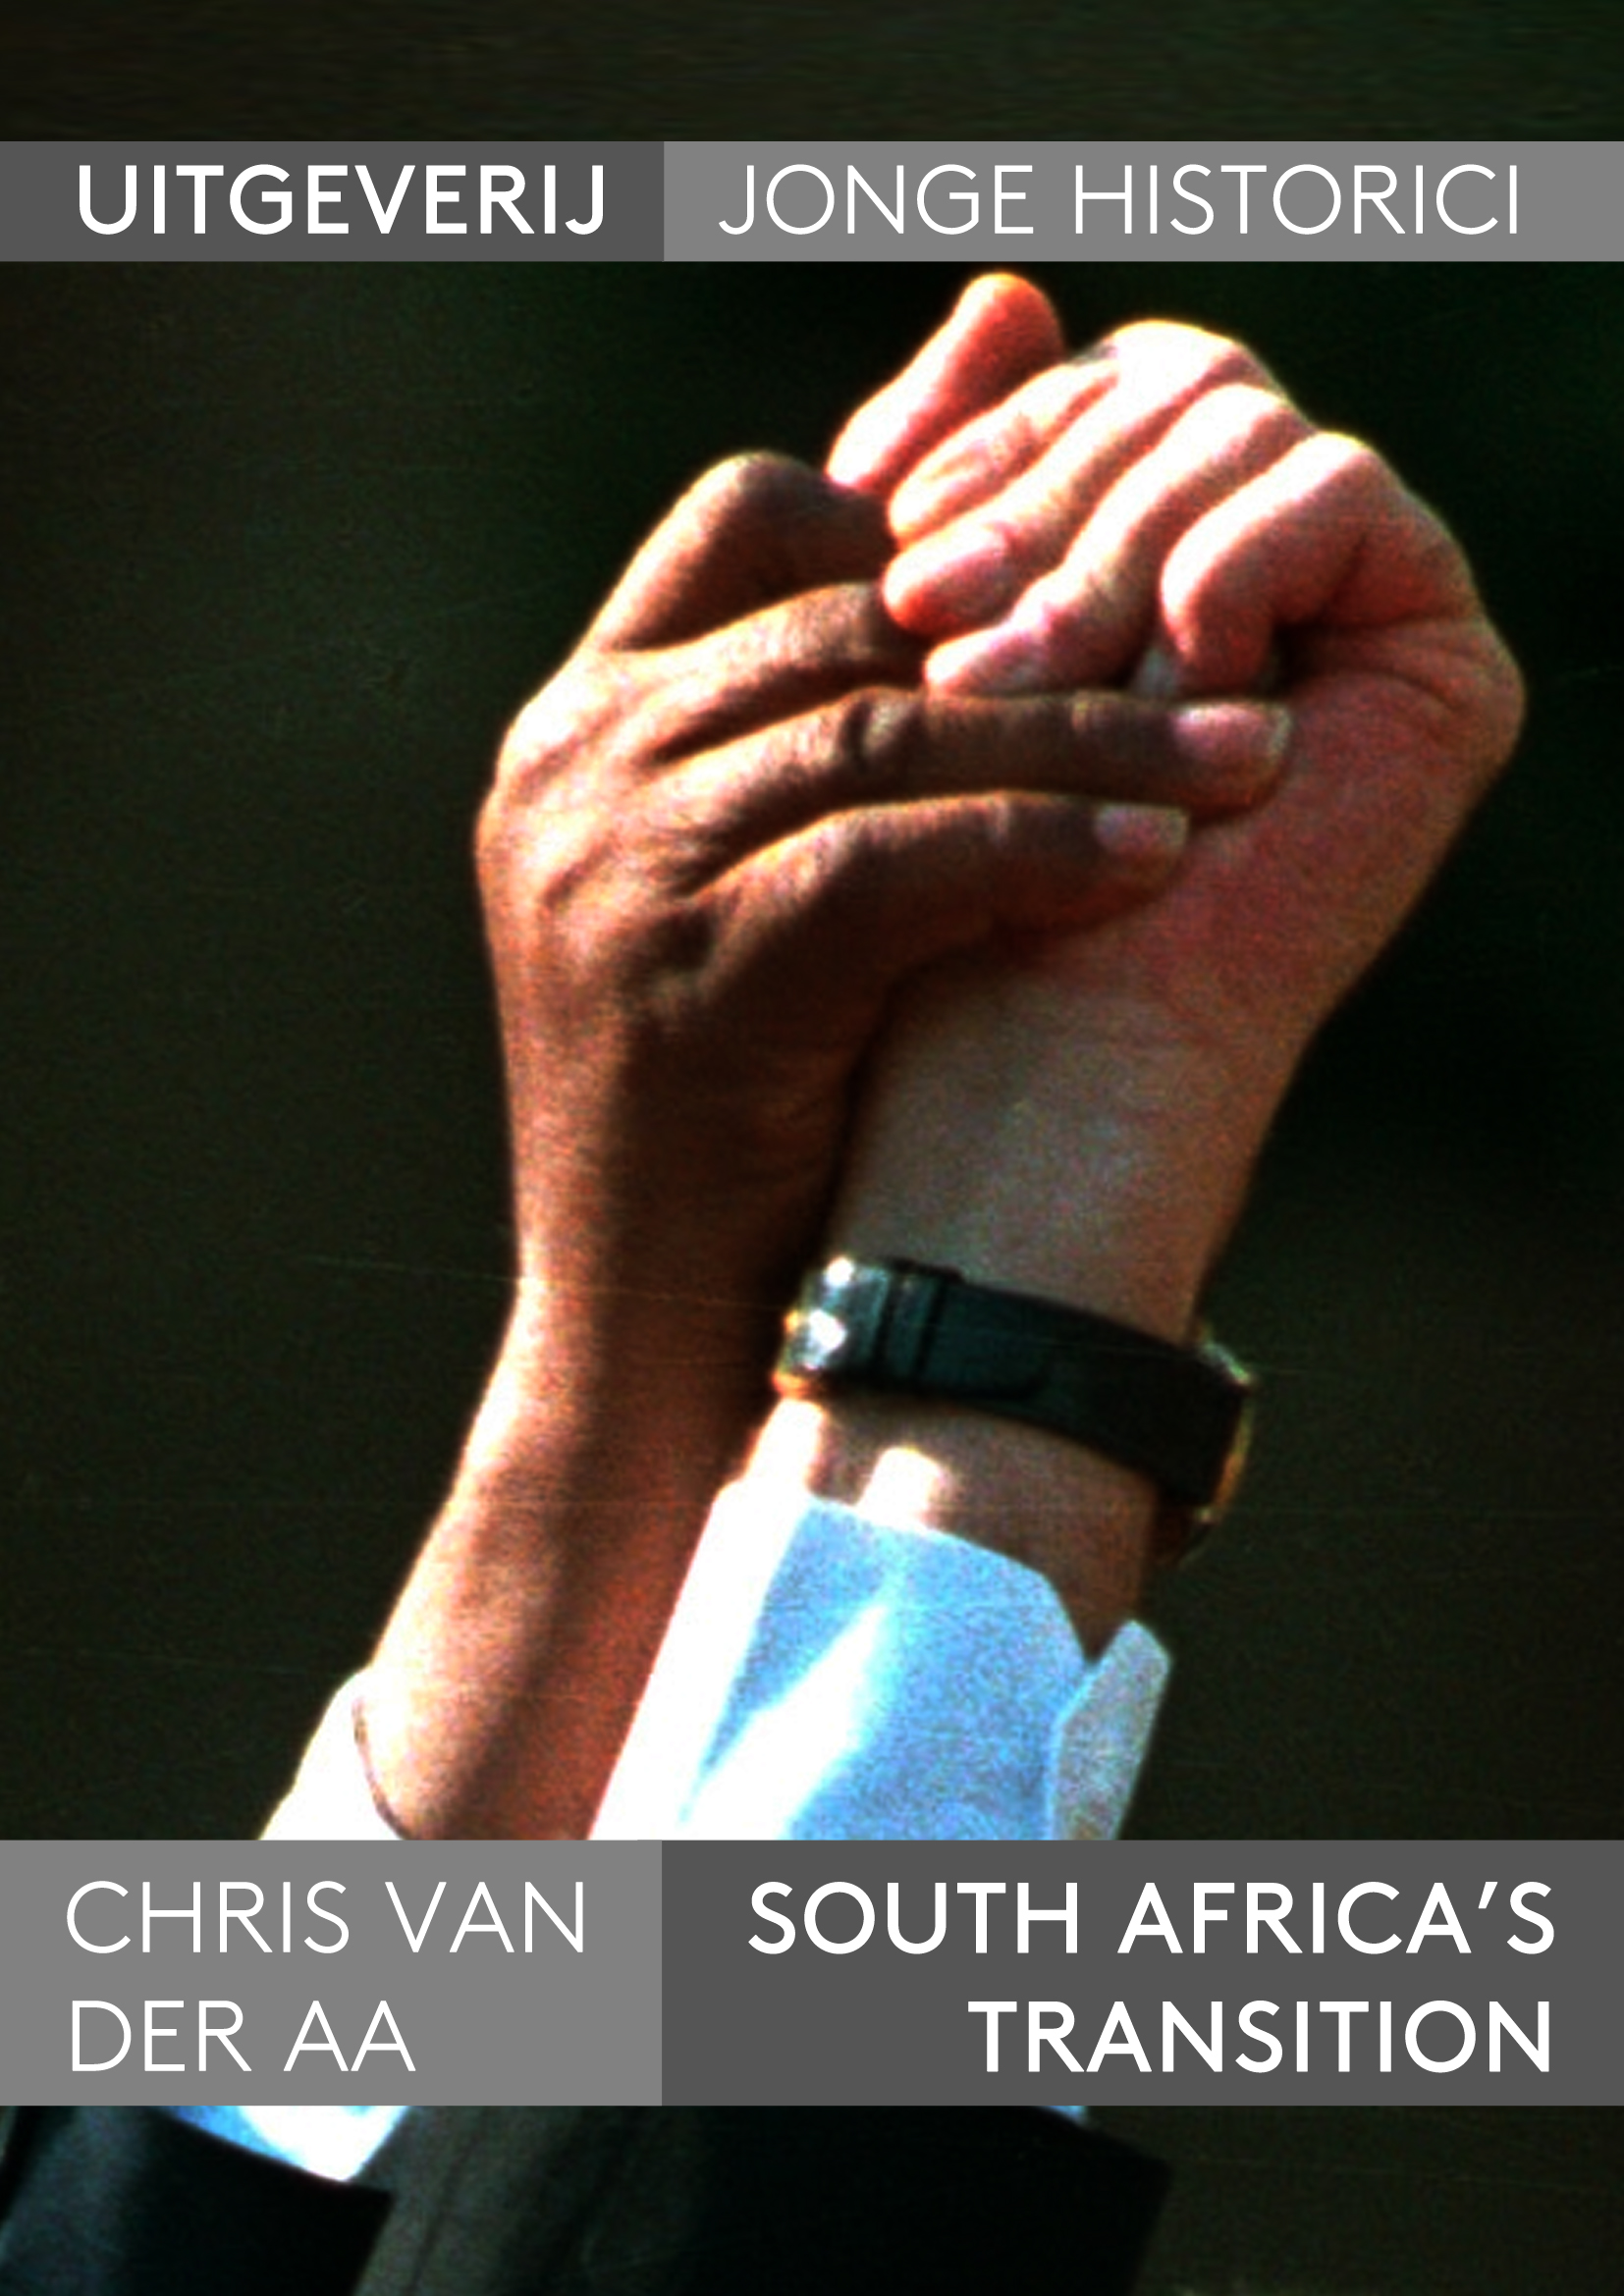 Chris van der Aa, South Africa's transition, from apartheid to liberal democracy